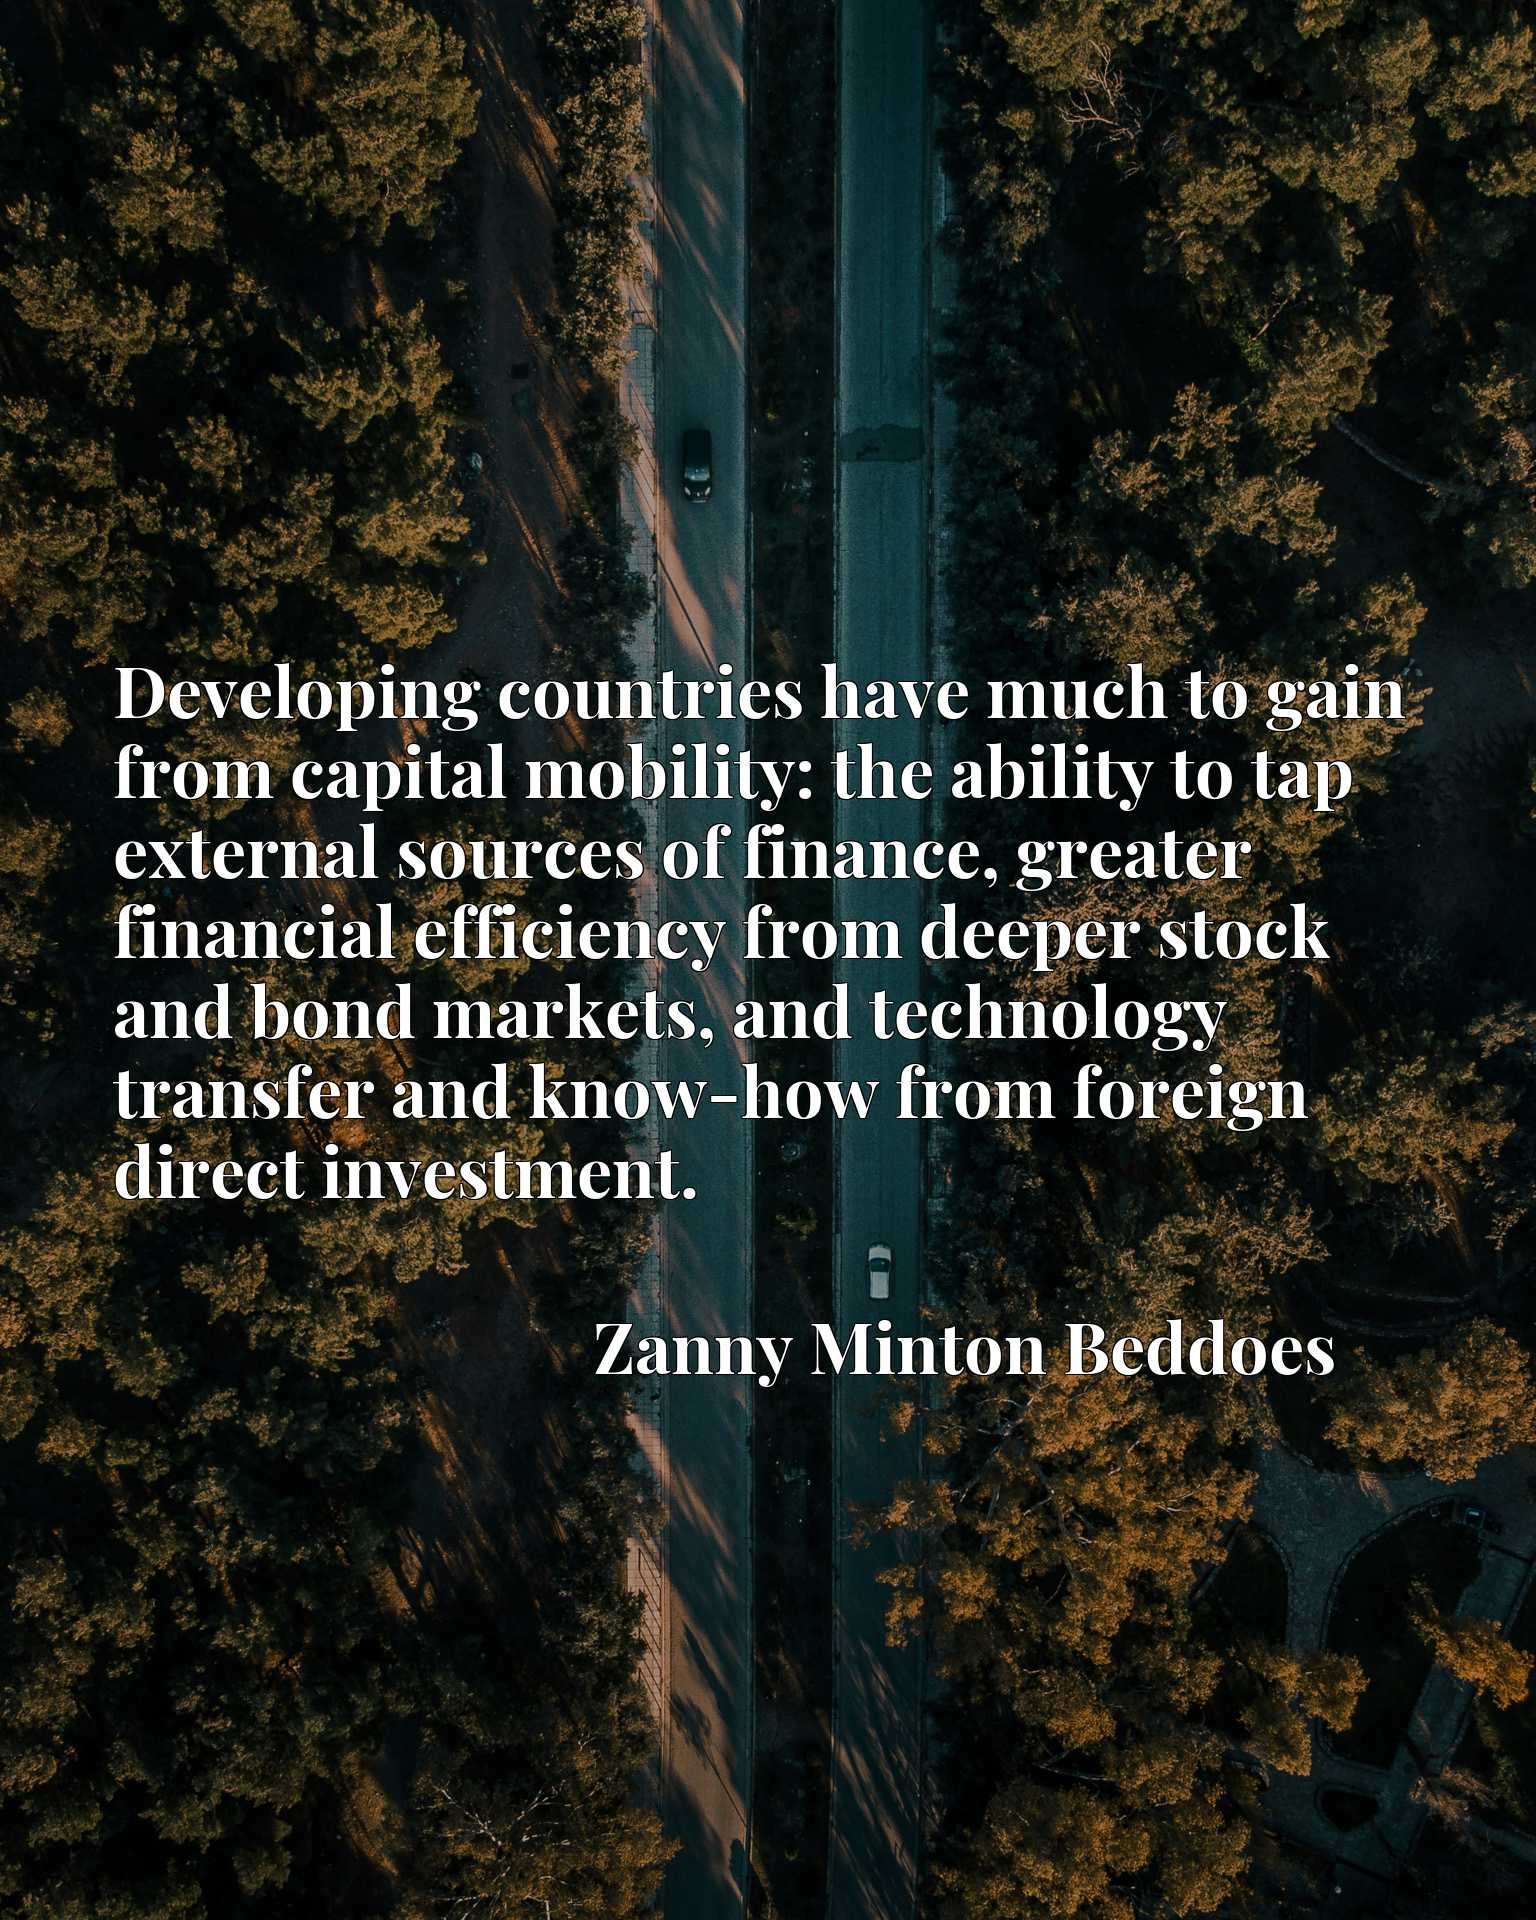 Developing countries have much to gain from capital mobility: the ability to tap external sources of finance, greater financial efficiency from deeper stock and bond markets, and technology transfer and know-how from foreign direct investment.